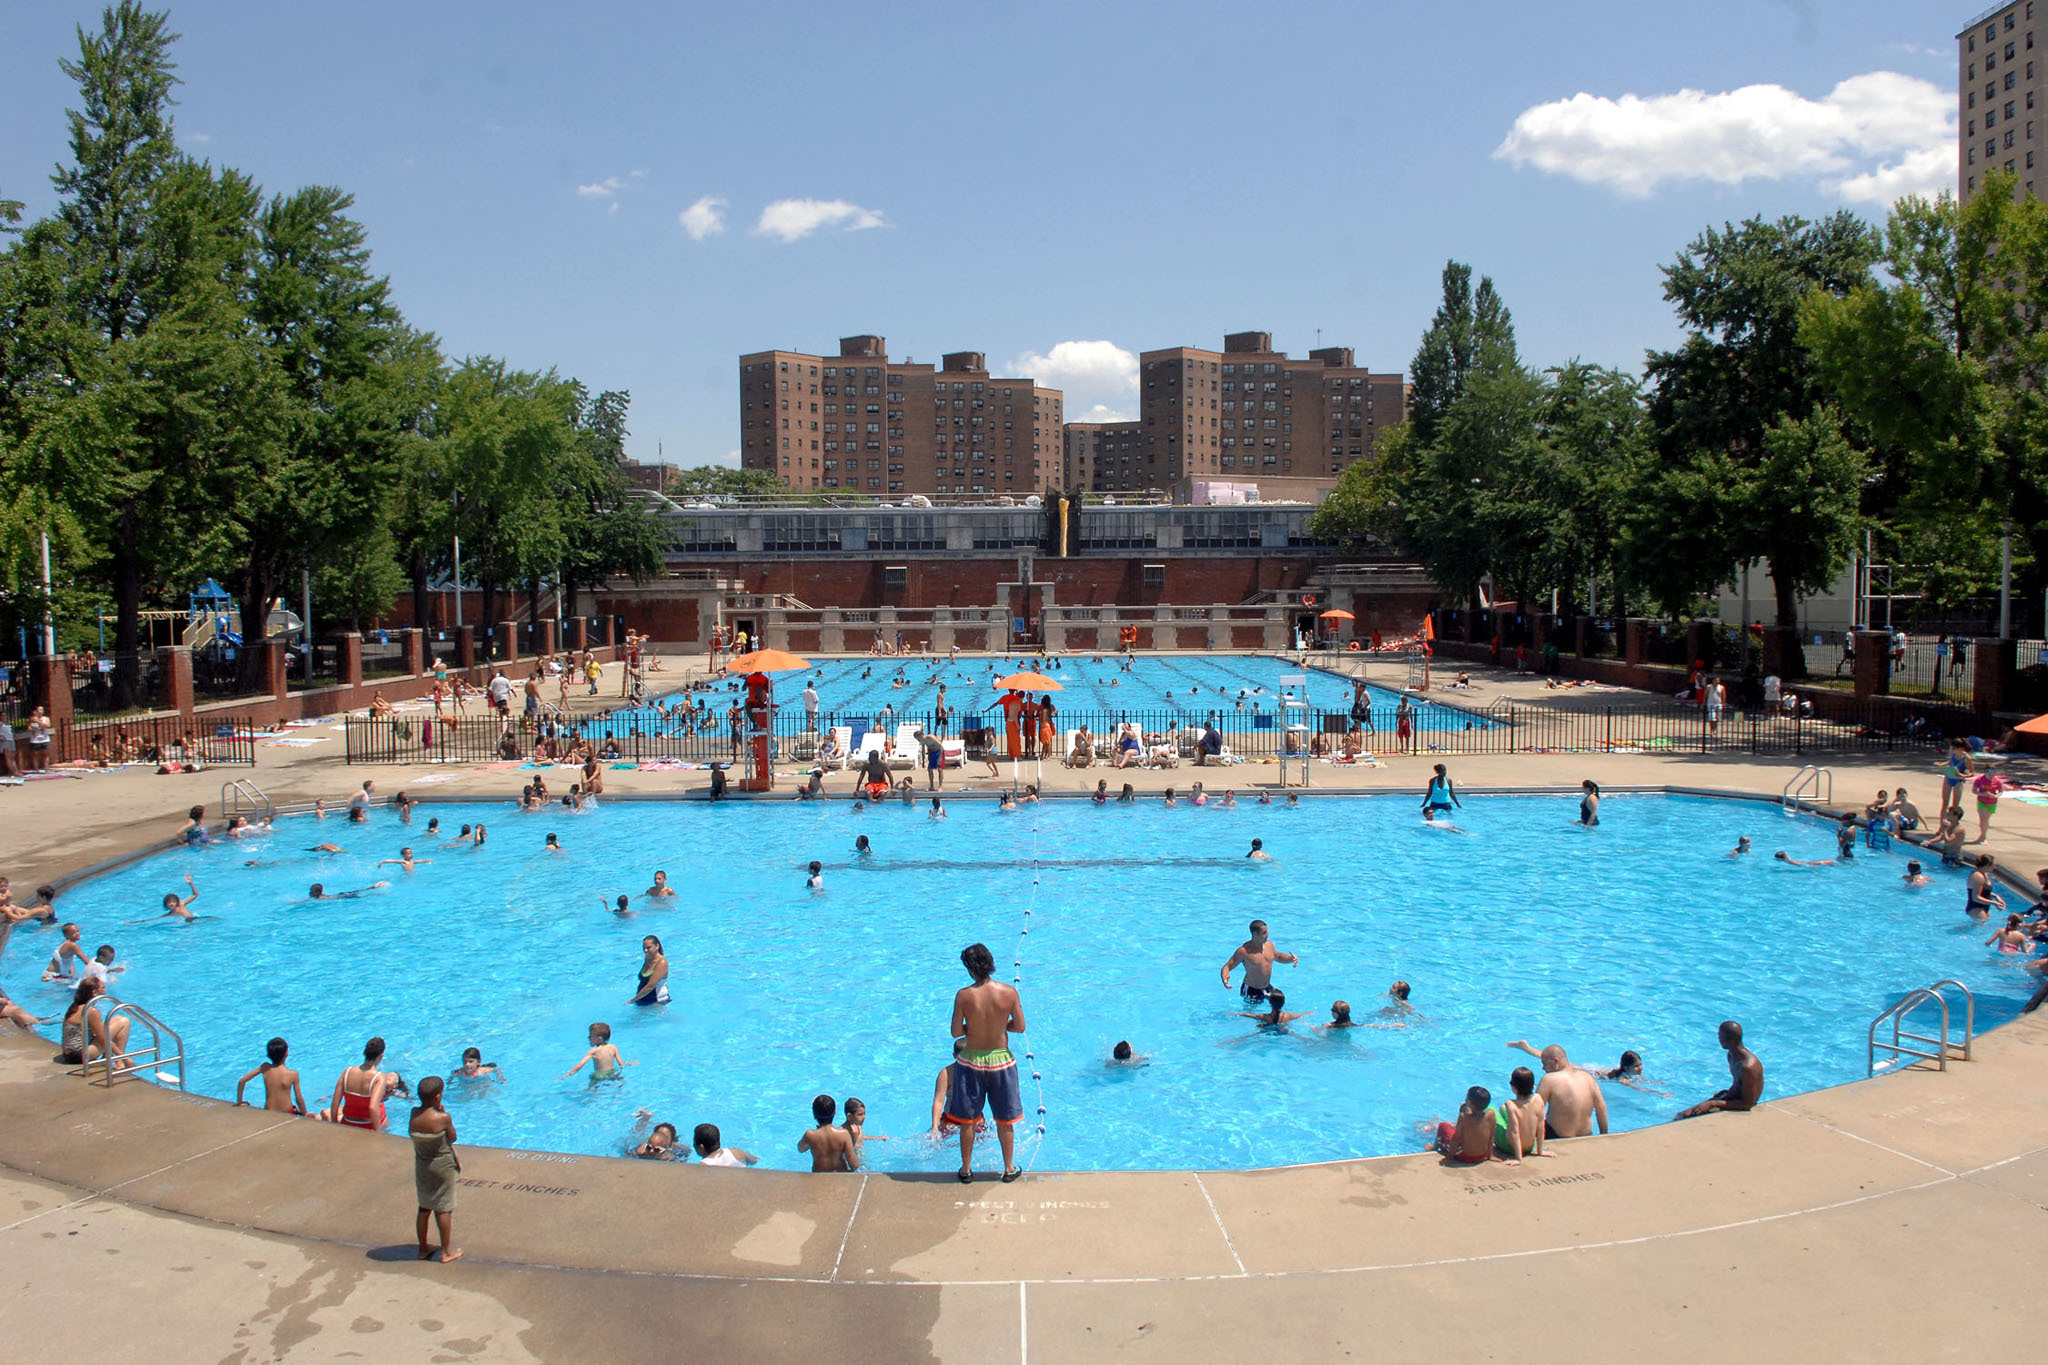 Best public swimming pools to cool off this summer in nyc for Club piscine west island